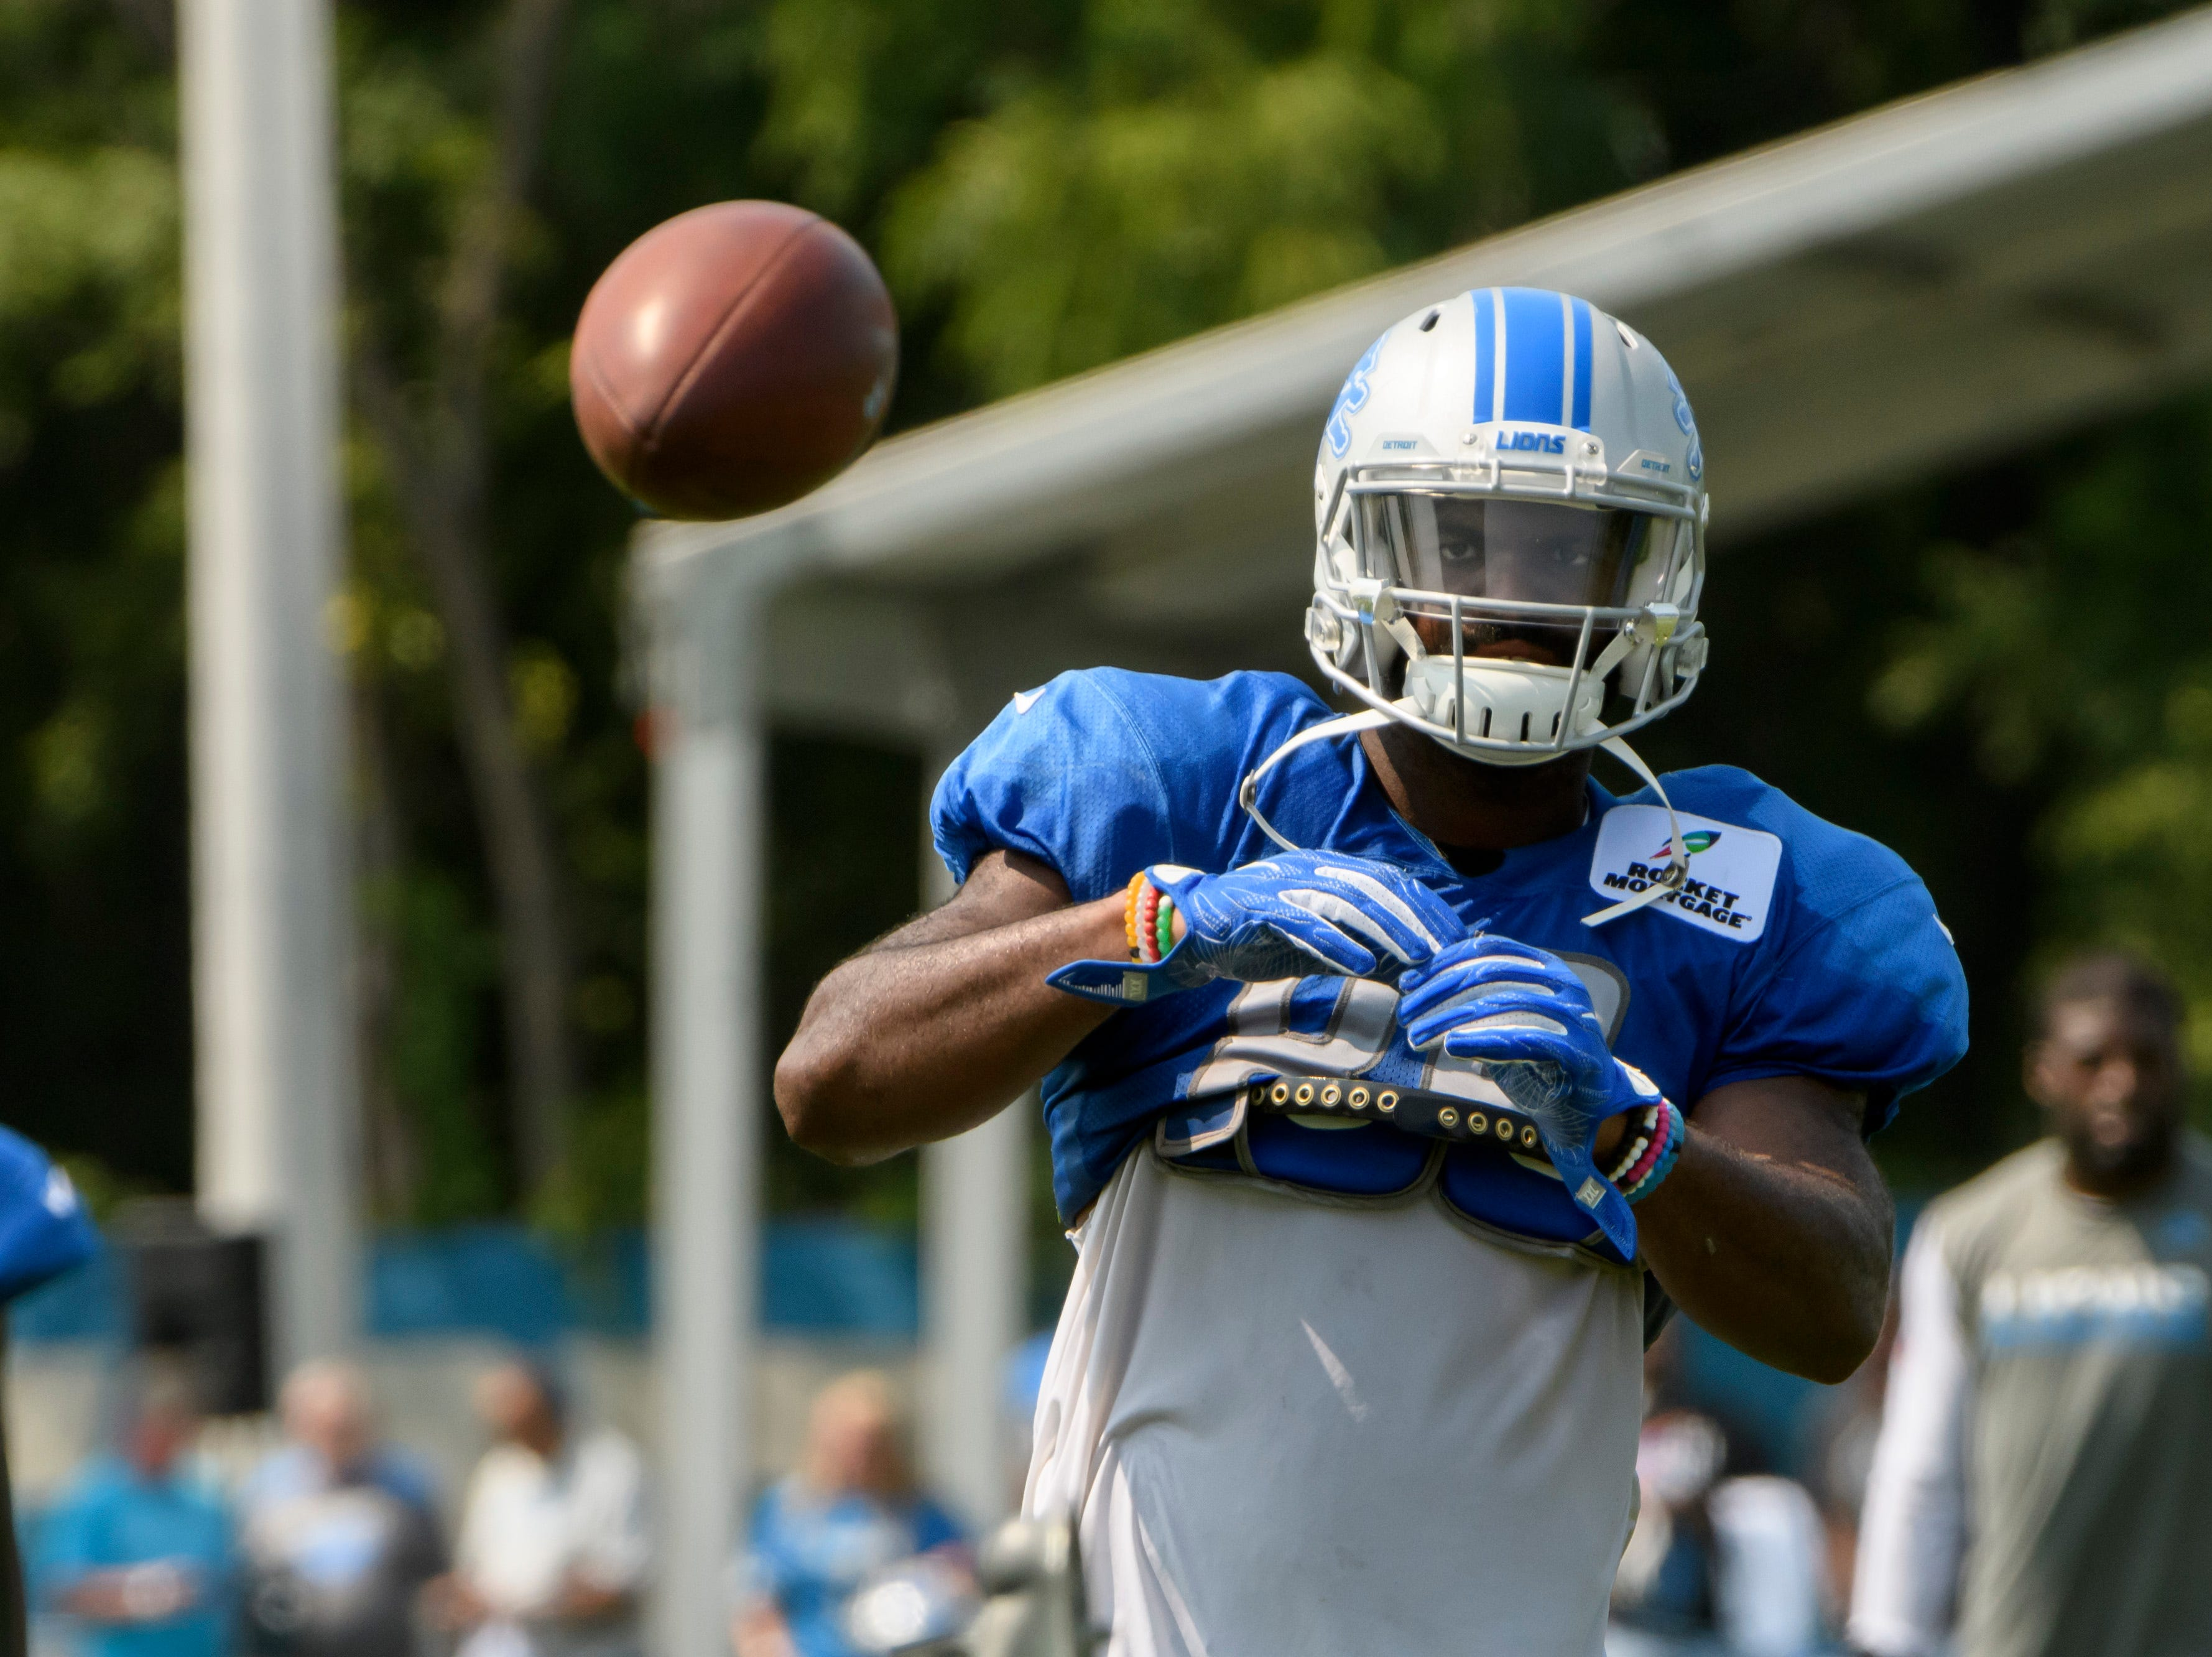 Detroit Lion tight end Marcus Lucas catches the ball during practice.